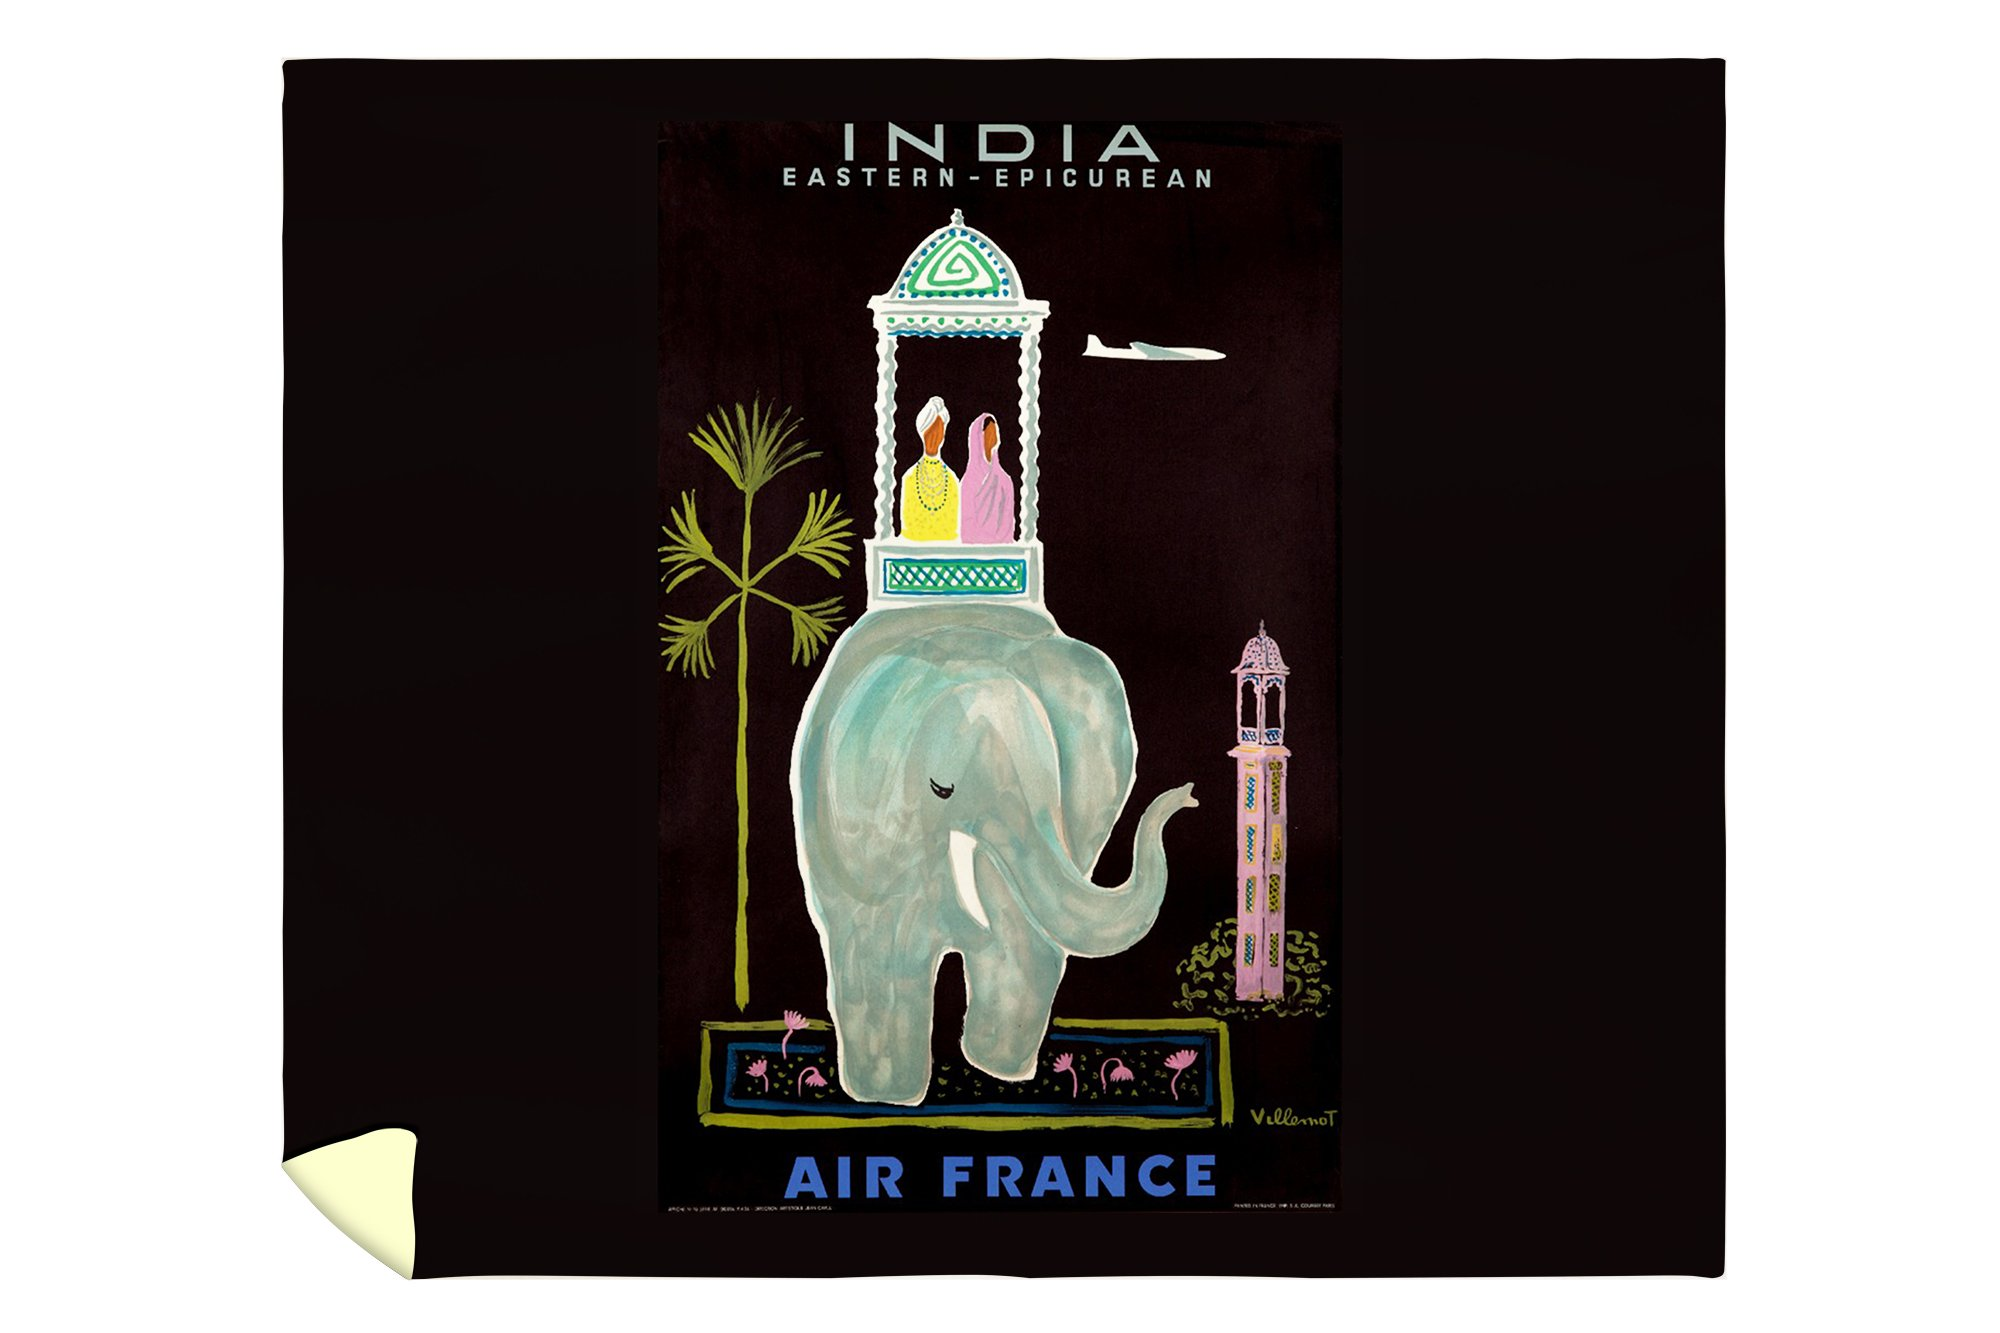 Air France India Vintage Poster (artist: Villemot, Bernard) France c. 1956 (88x104 King Microfiber Duvet Cover)